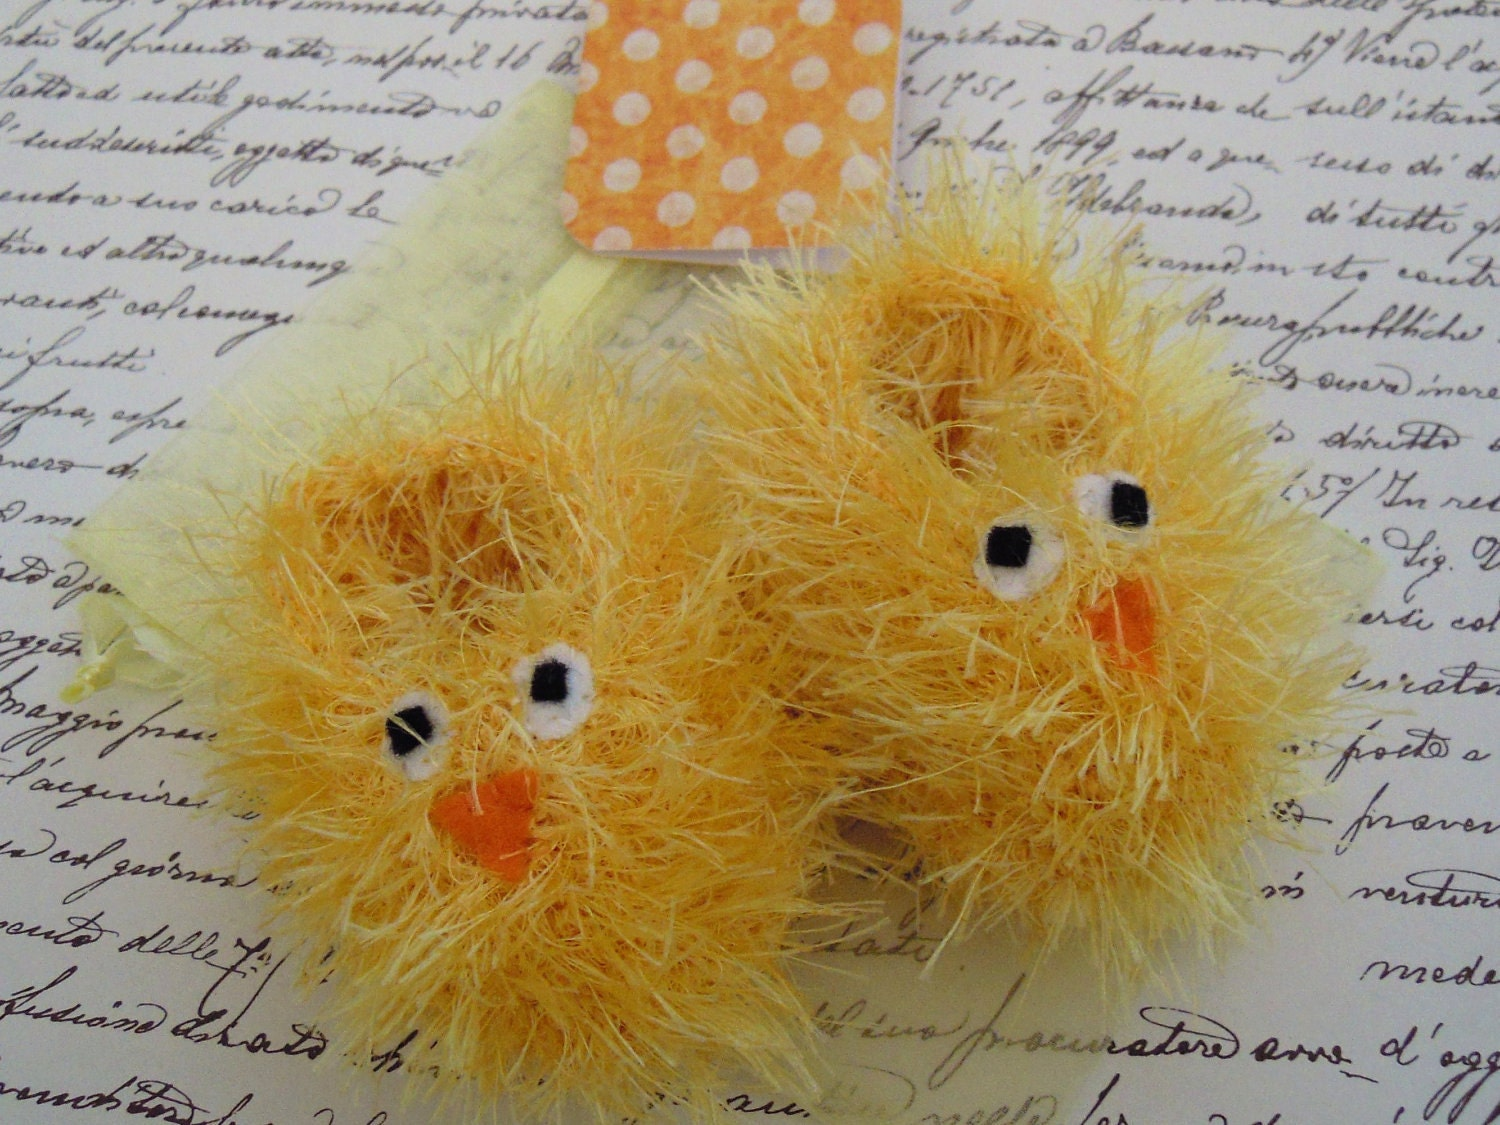 Easter chick baby gift set - fluffy hand knitted yellow bird booties, matching gift bag and polka dot gift card